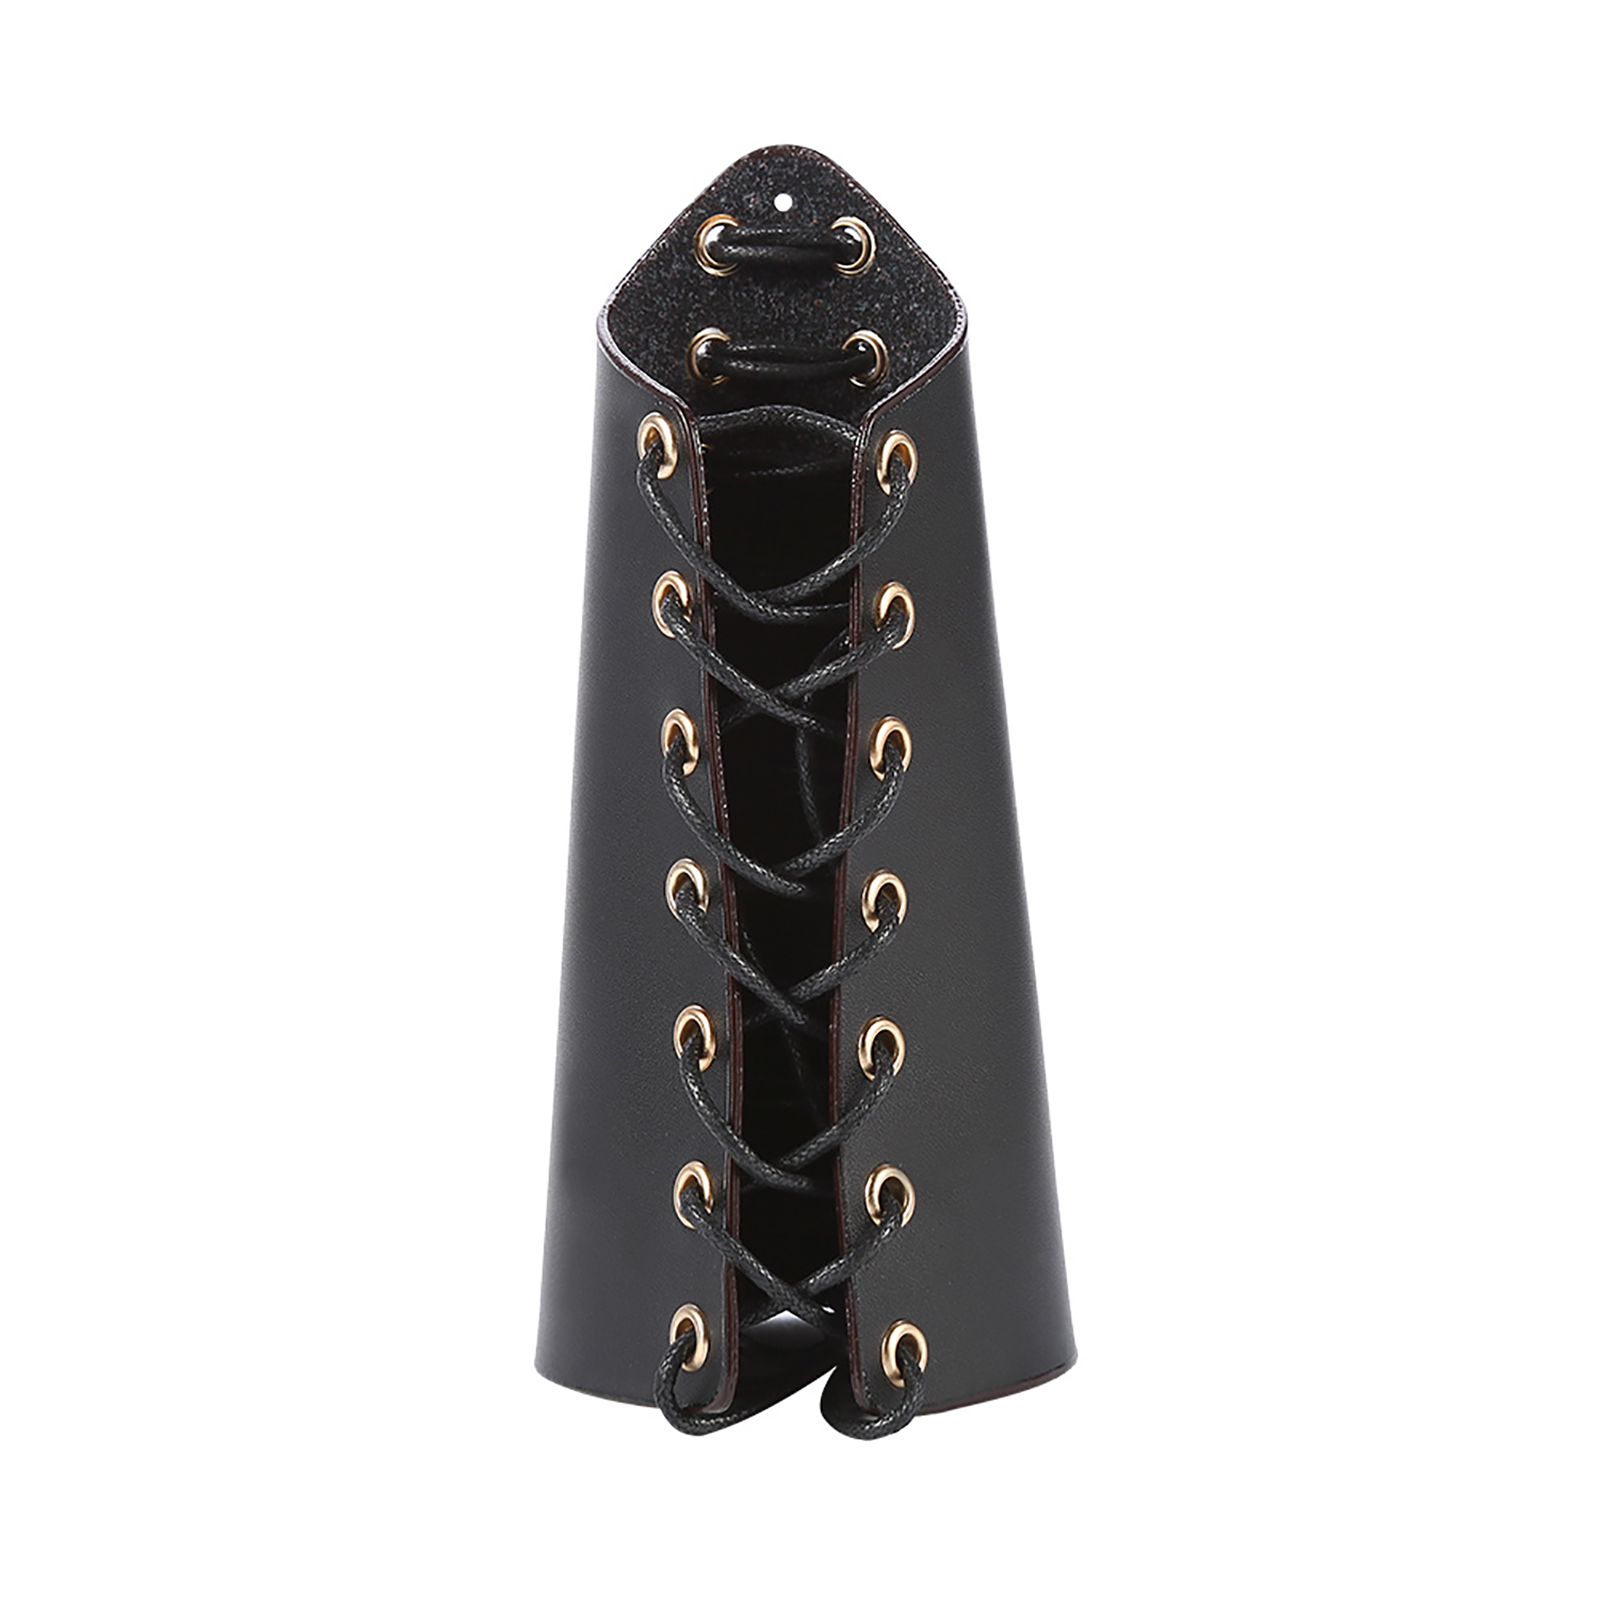 Unisex-Archery-Recurve-Bow-Arm-Guard-Traditional-Cow-Leather-Bracer-for-Longbow thumbnail 11